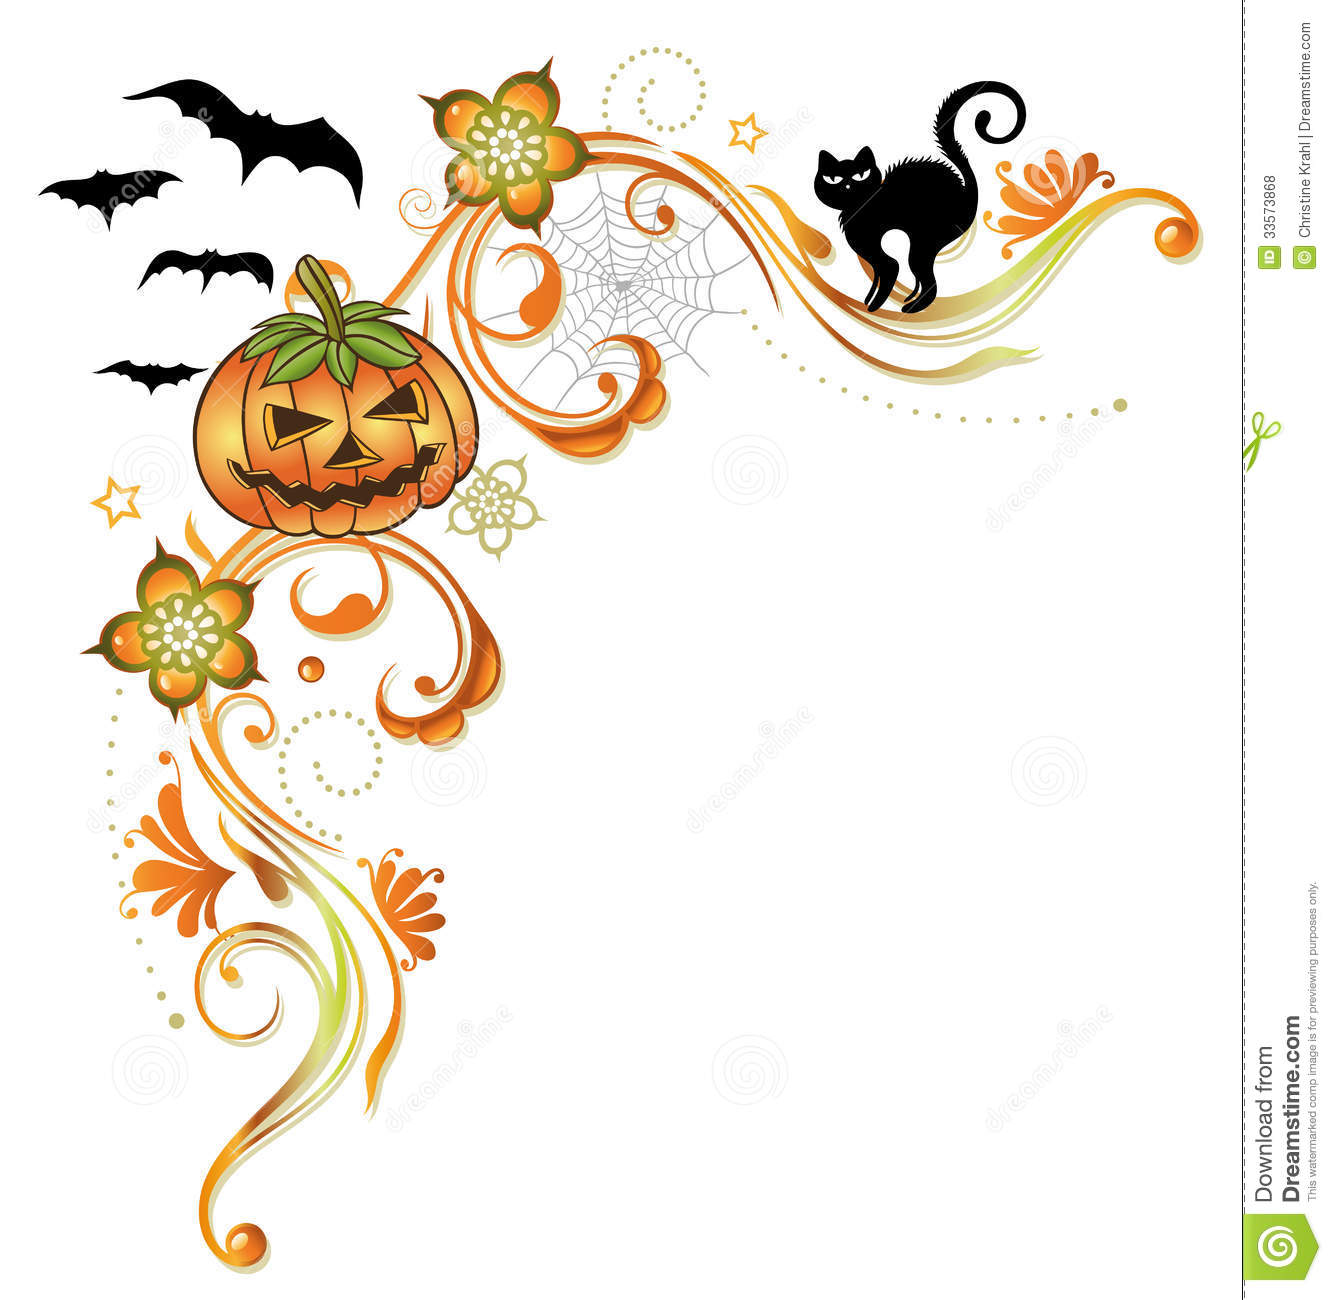 image regarding Free Printable Halloween Borders titled Printable Clipart Borders Free of charge down load least difficult Printable